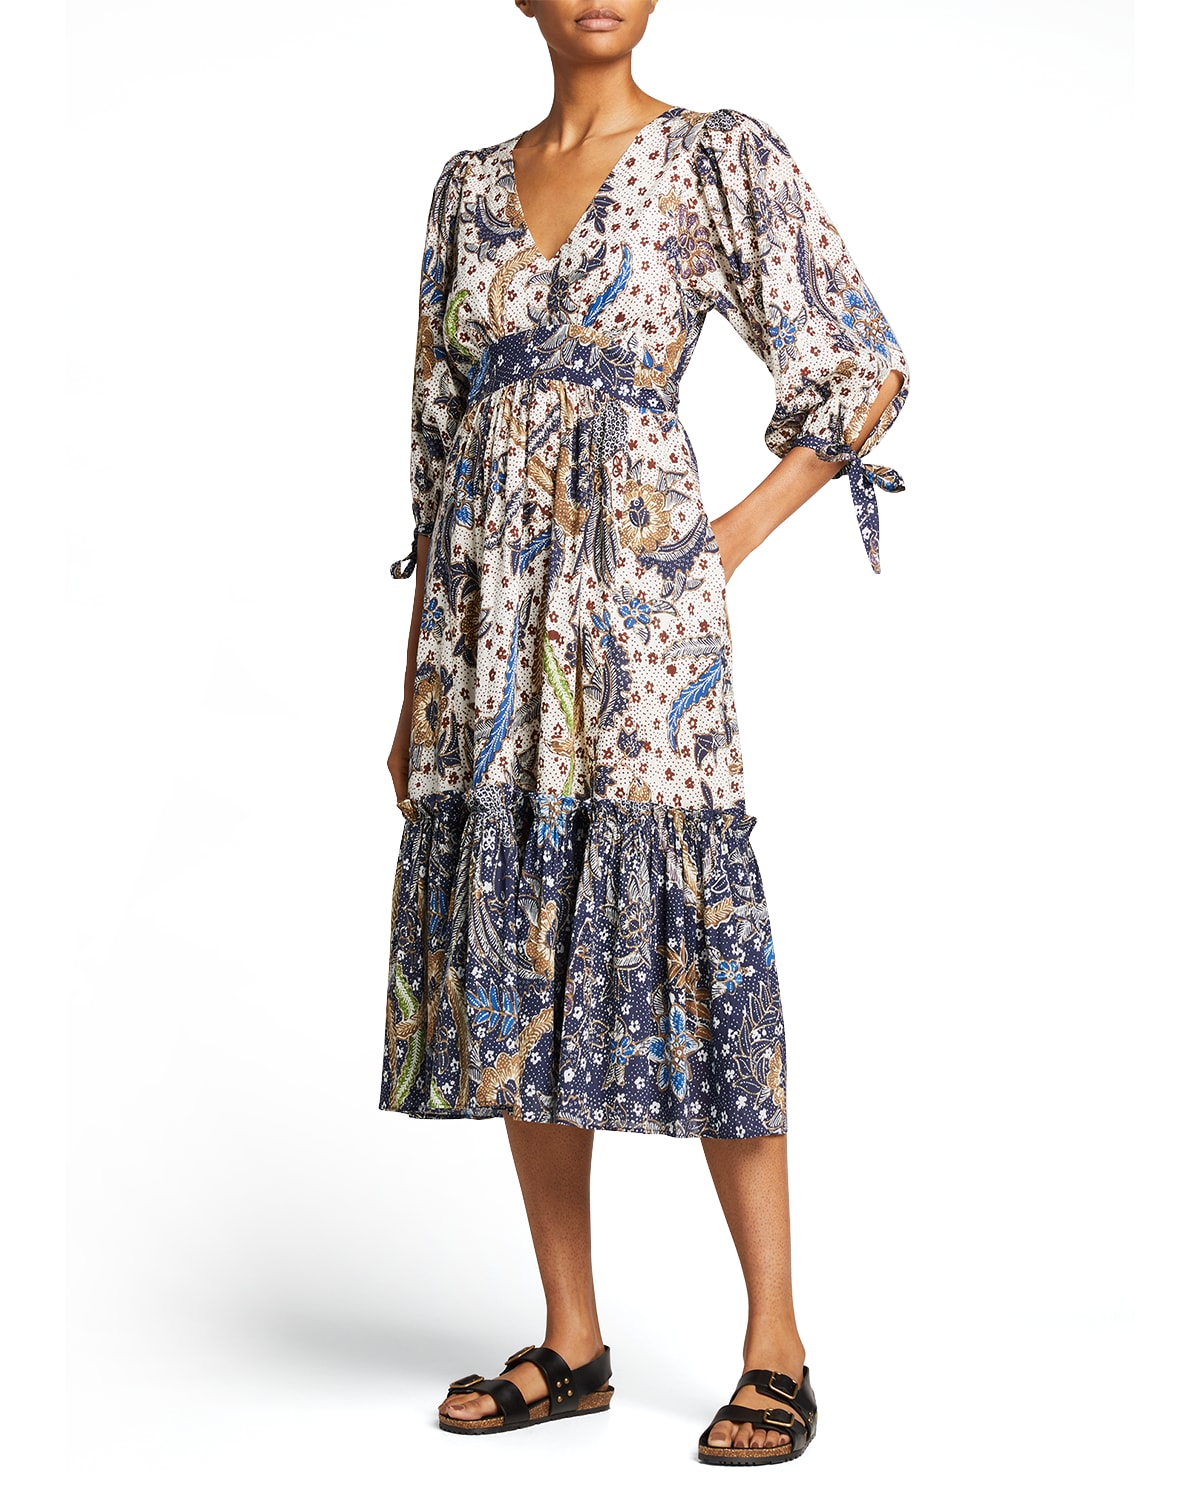 Round Hill Embroidered Voile Dress